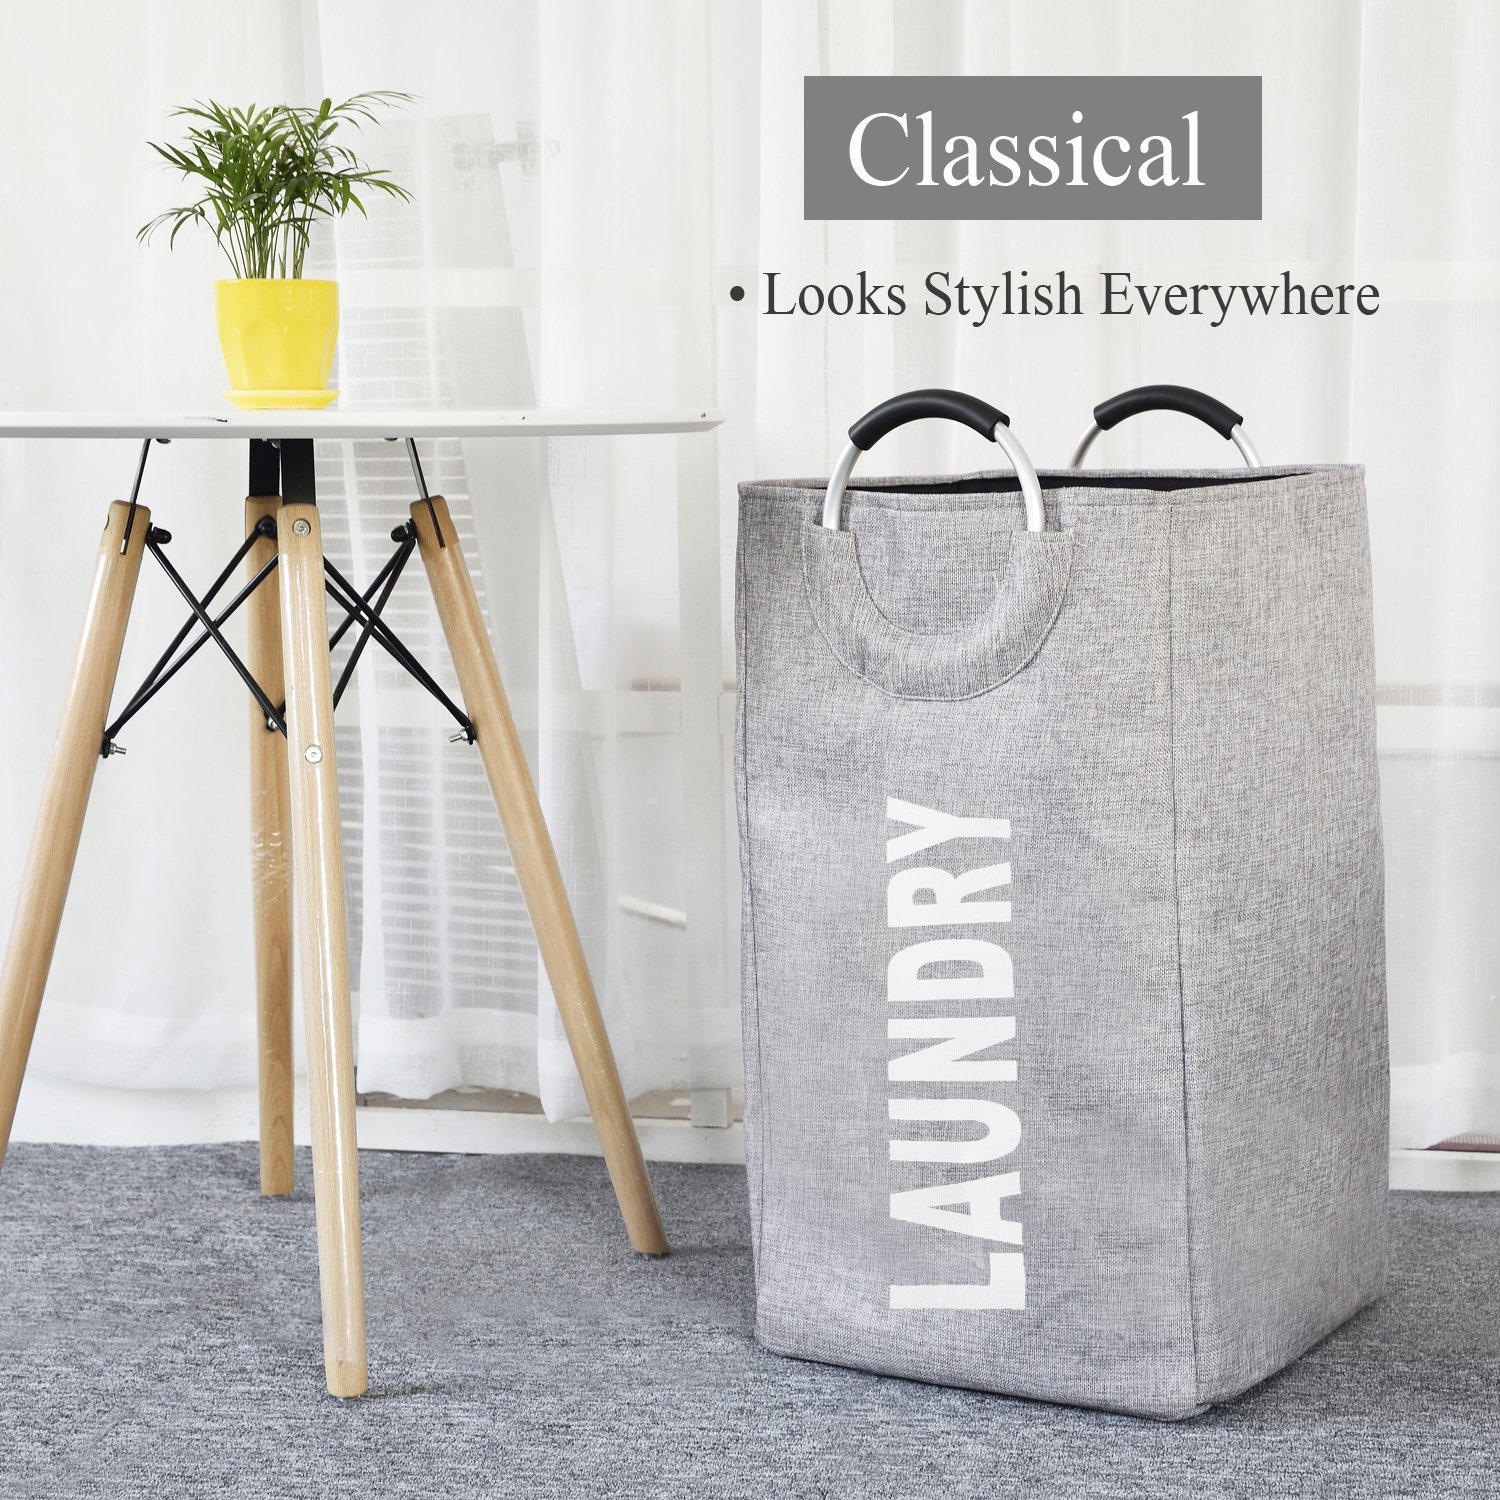 22/' Tall Large Round Laundry Hamper for Clothes Storage 22/'/' Tall Large Round Laundry Hamper for Clothes Storage Smart Storage Haundry Collapsible Laundry Basket